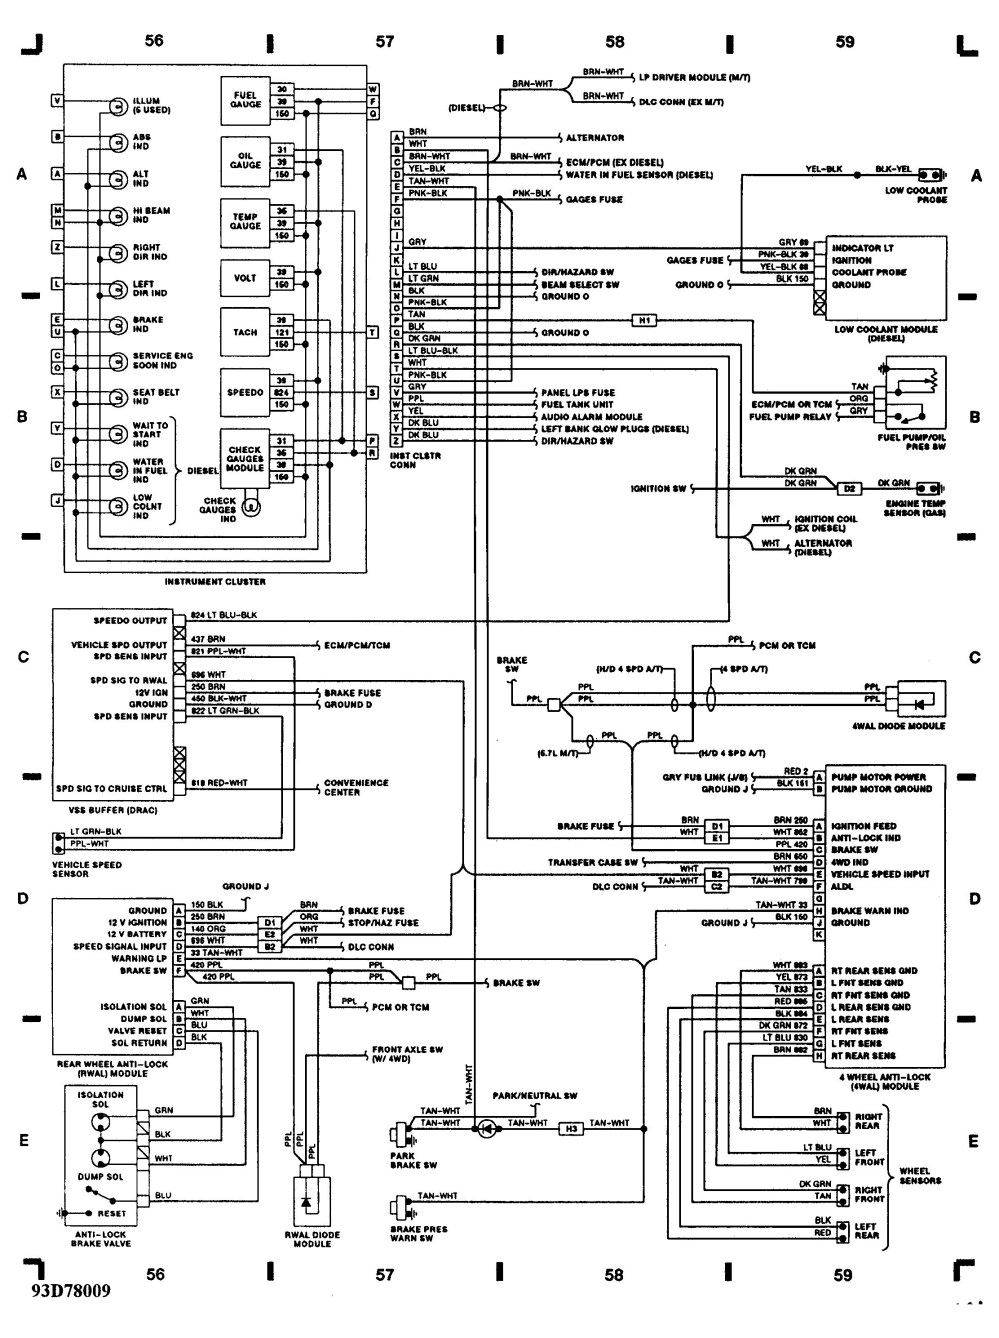 medium resolution of 1997 chevy 5 7 ignition wiring diagram wiring diagram 1997 chevy tahoe 5 7 ignition coil on ignition coil pack wiring